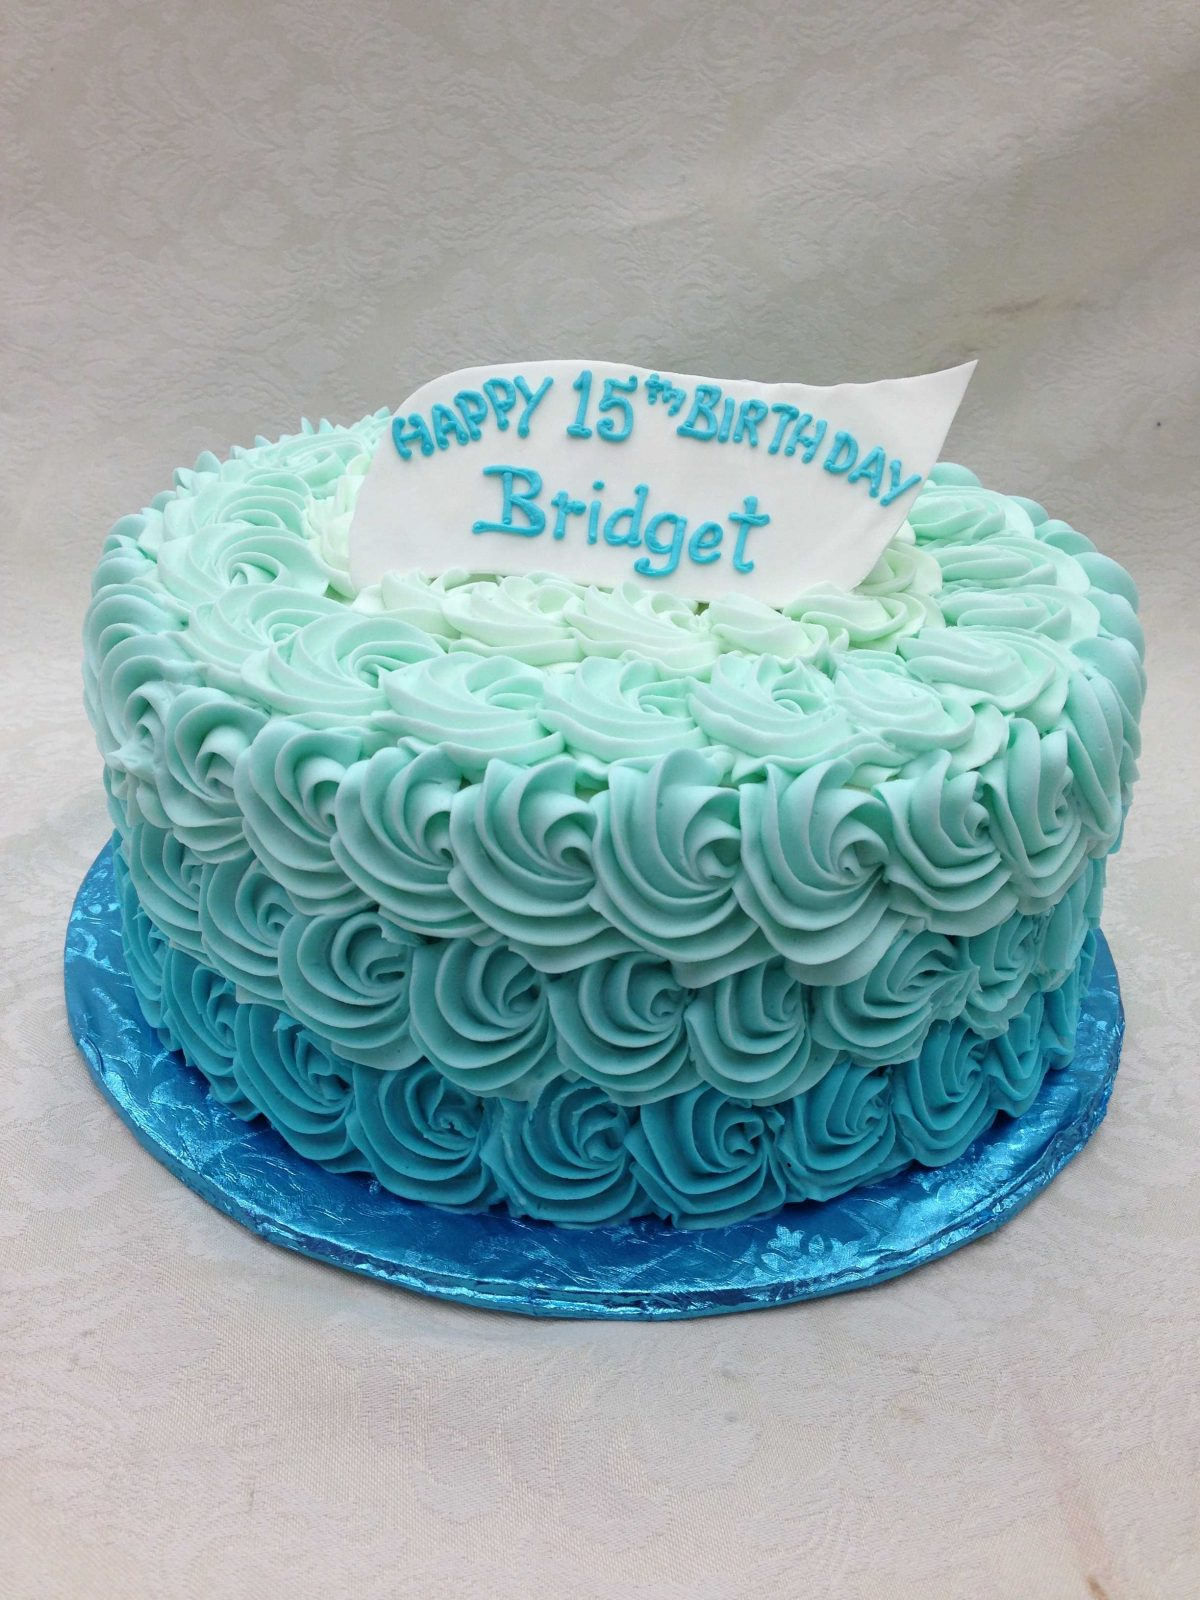 All over rosettes on ombre cake design